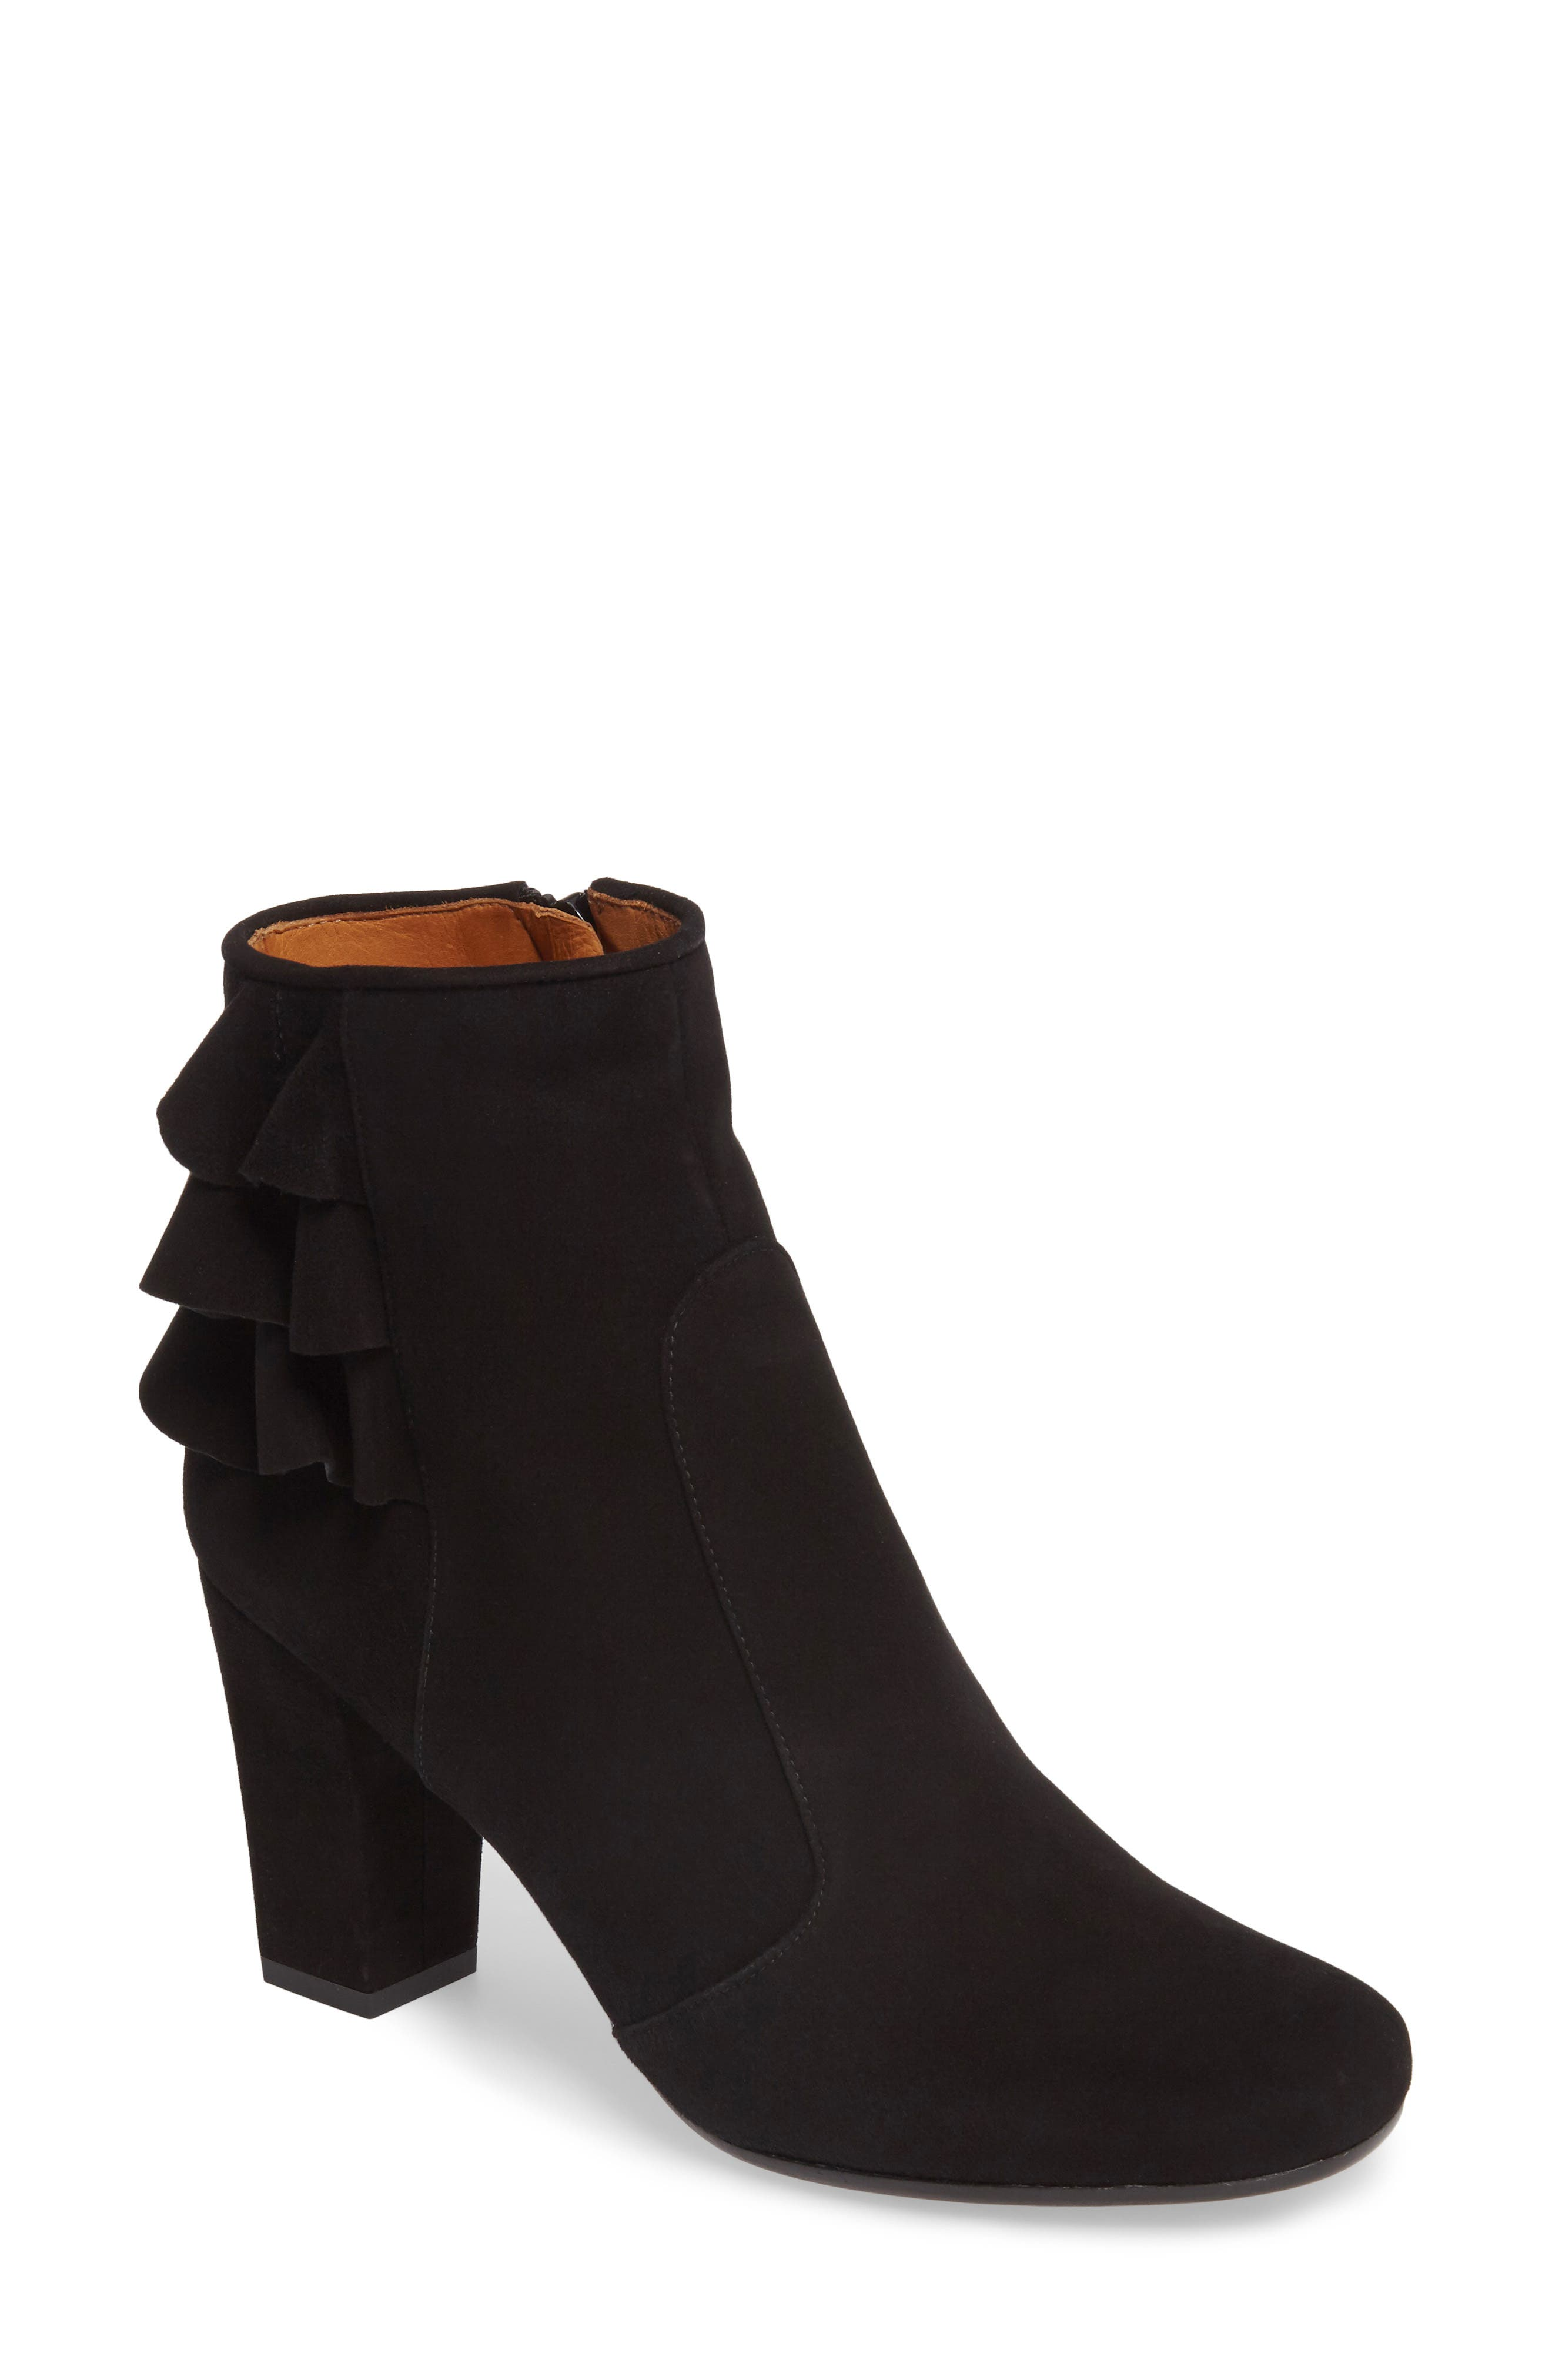 Acha Ruffle Bootie,                         Main,                         color, 001